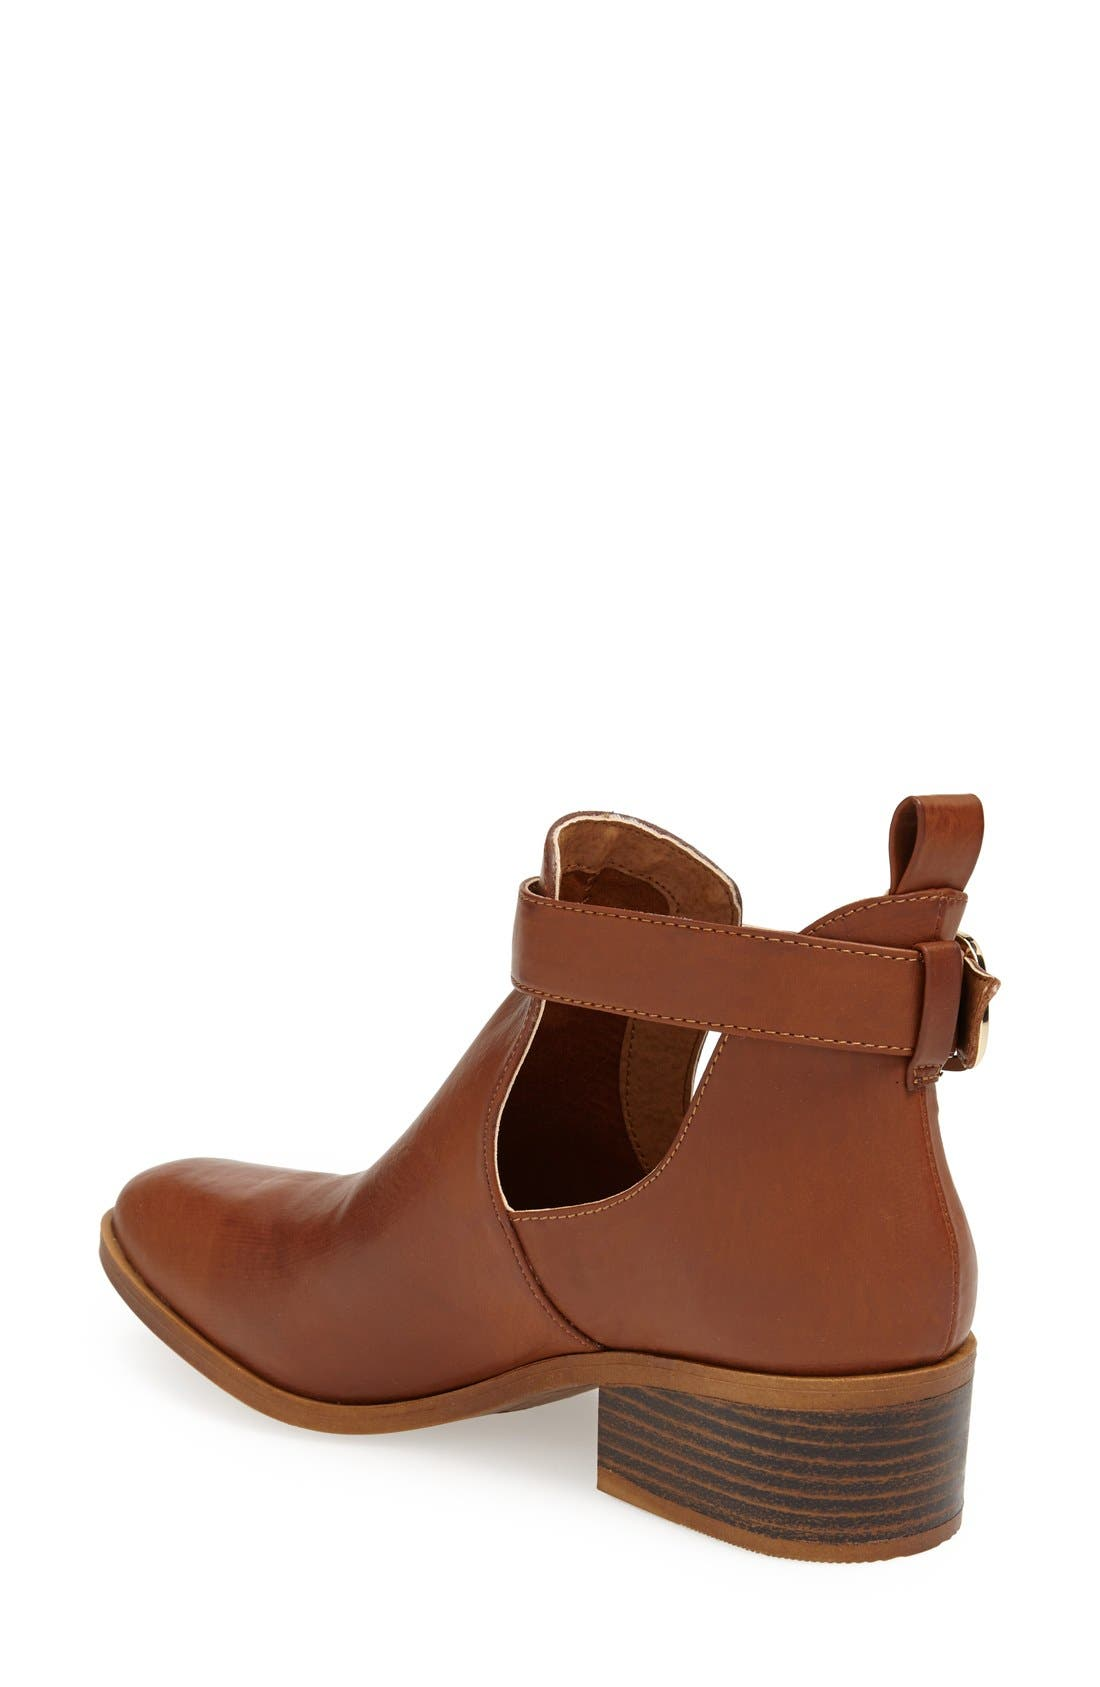 Alternate Image 2  - BC Footwear 'Dress Up' Ankle Bootie (Women)